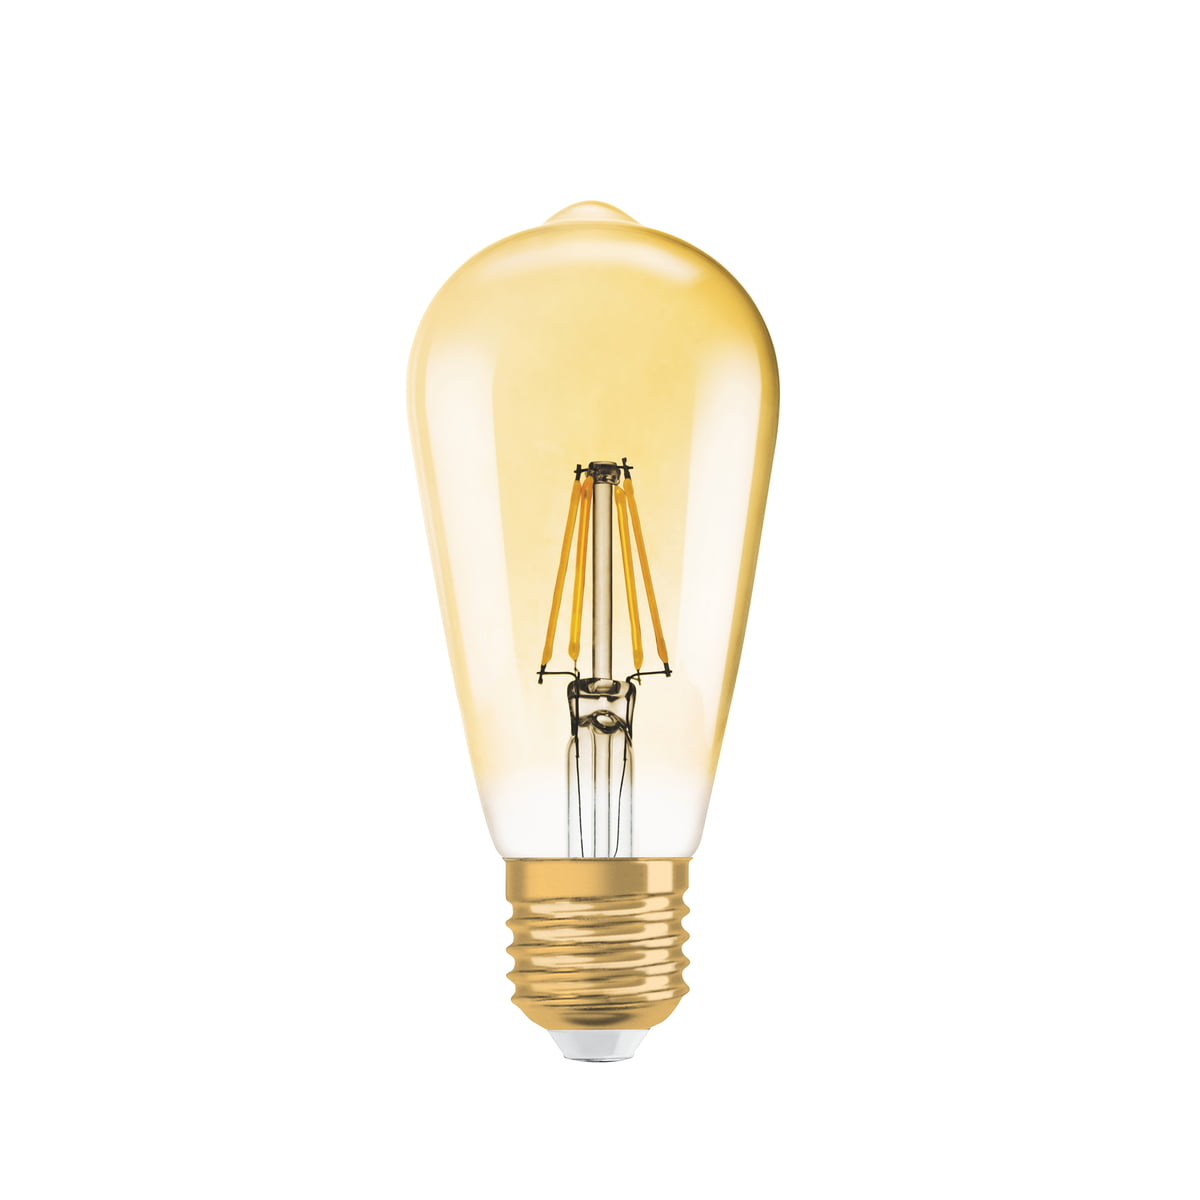 products watt of edison shades light clear smoke lighting vintage bulb